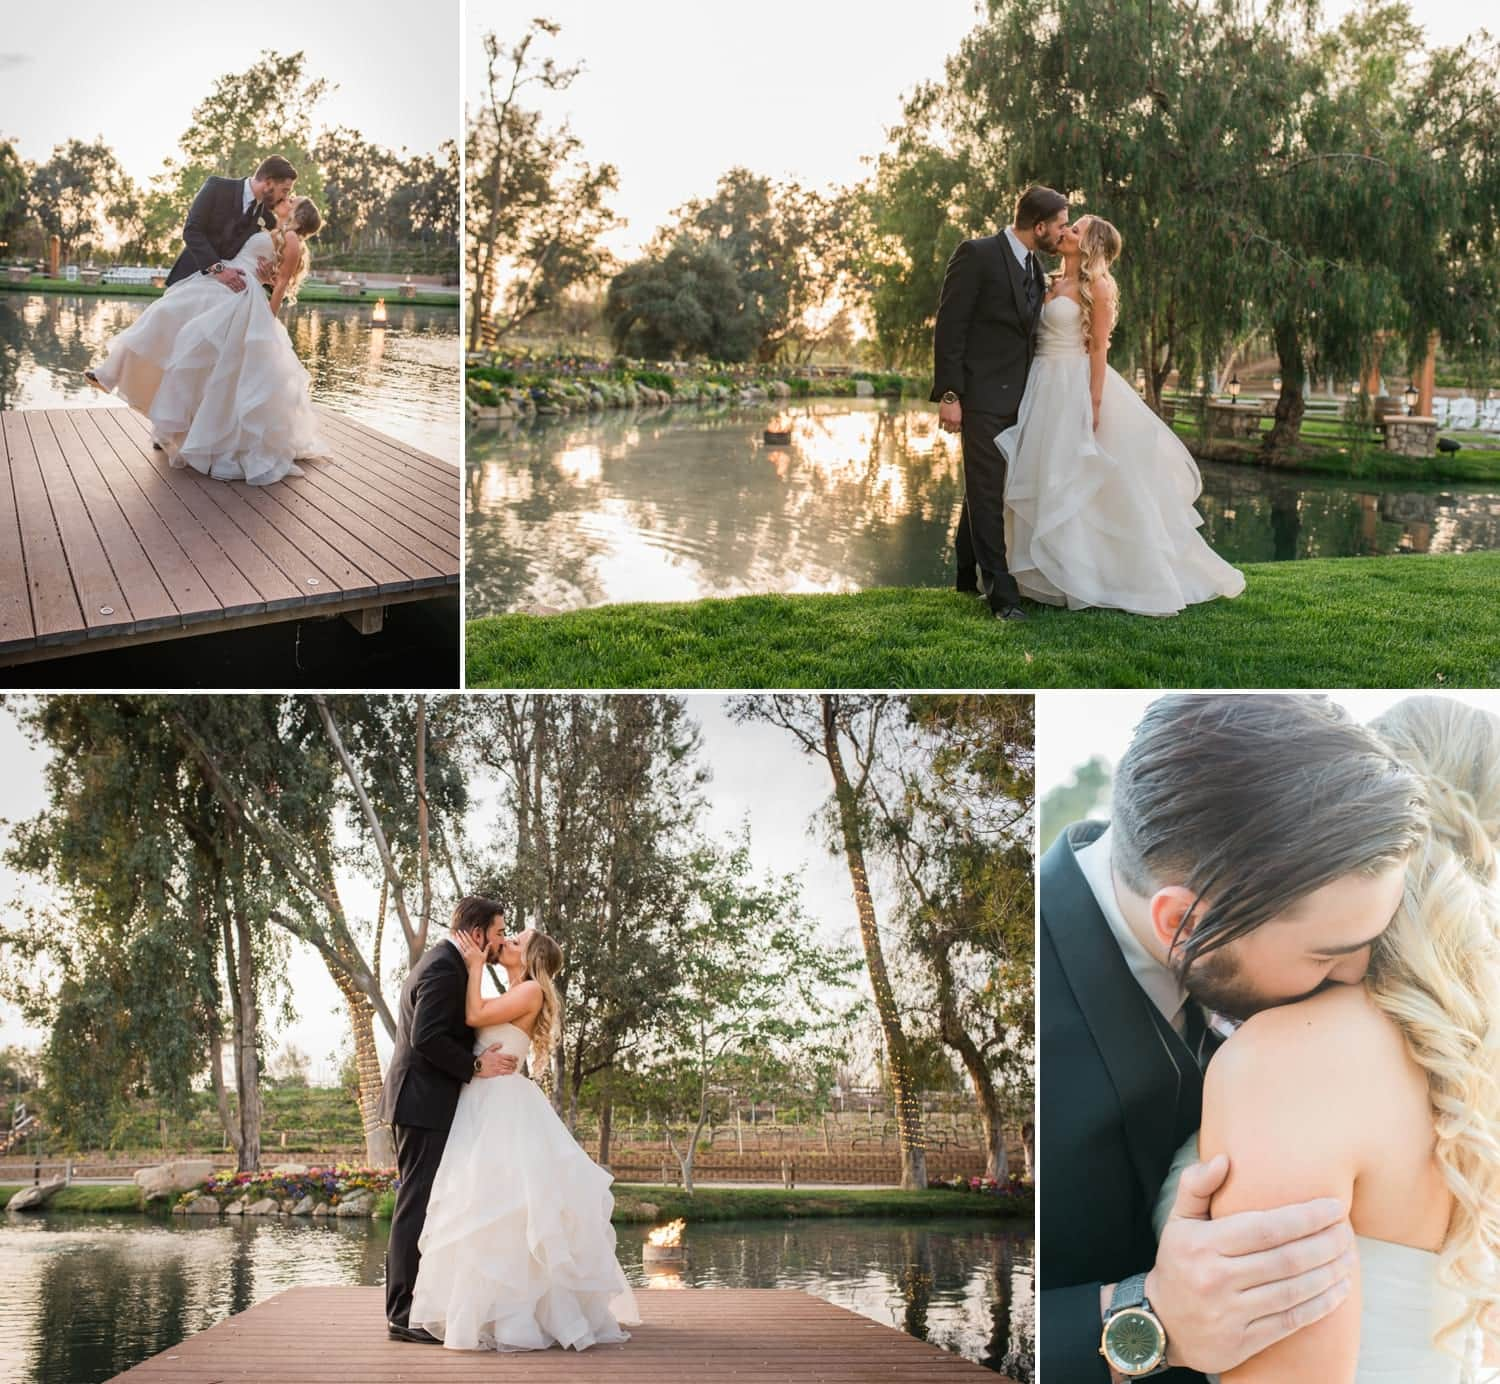 Groom dipping bride for a kiss on the dock at Lake Oak Meadows.